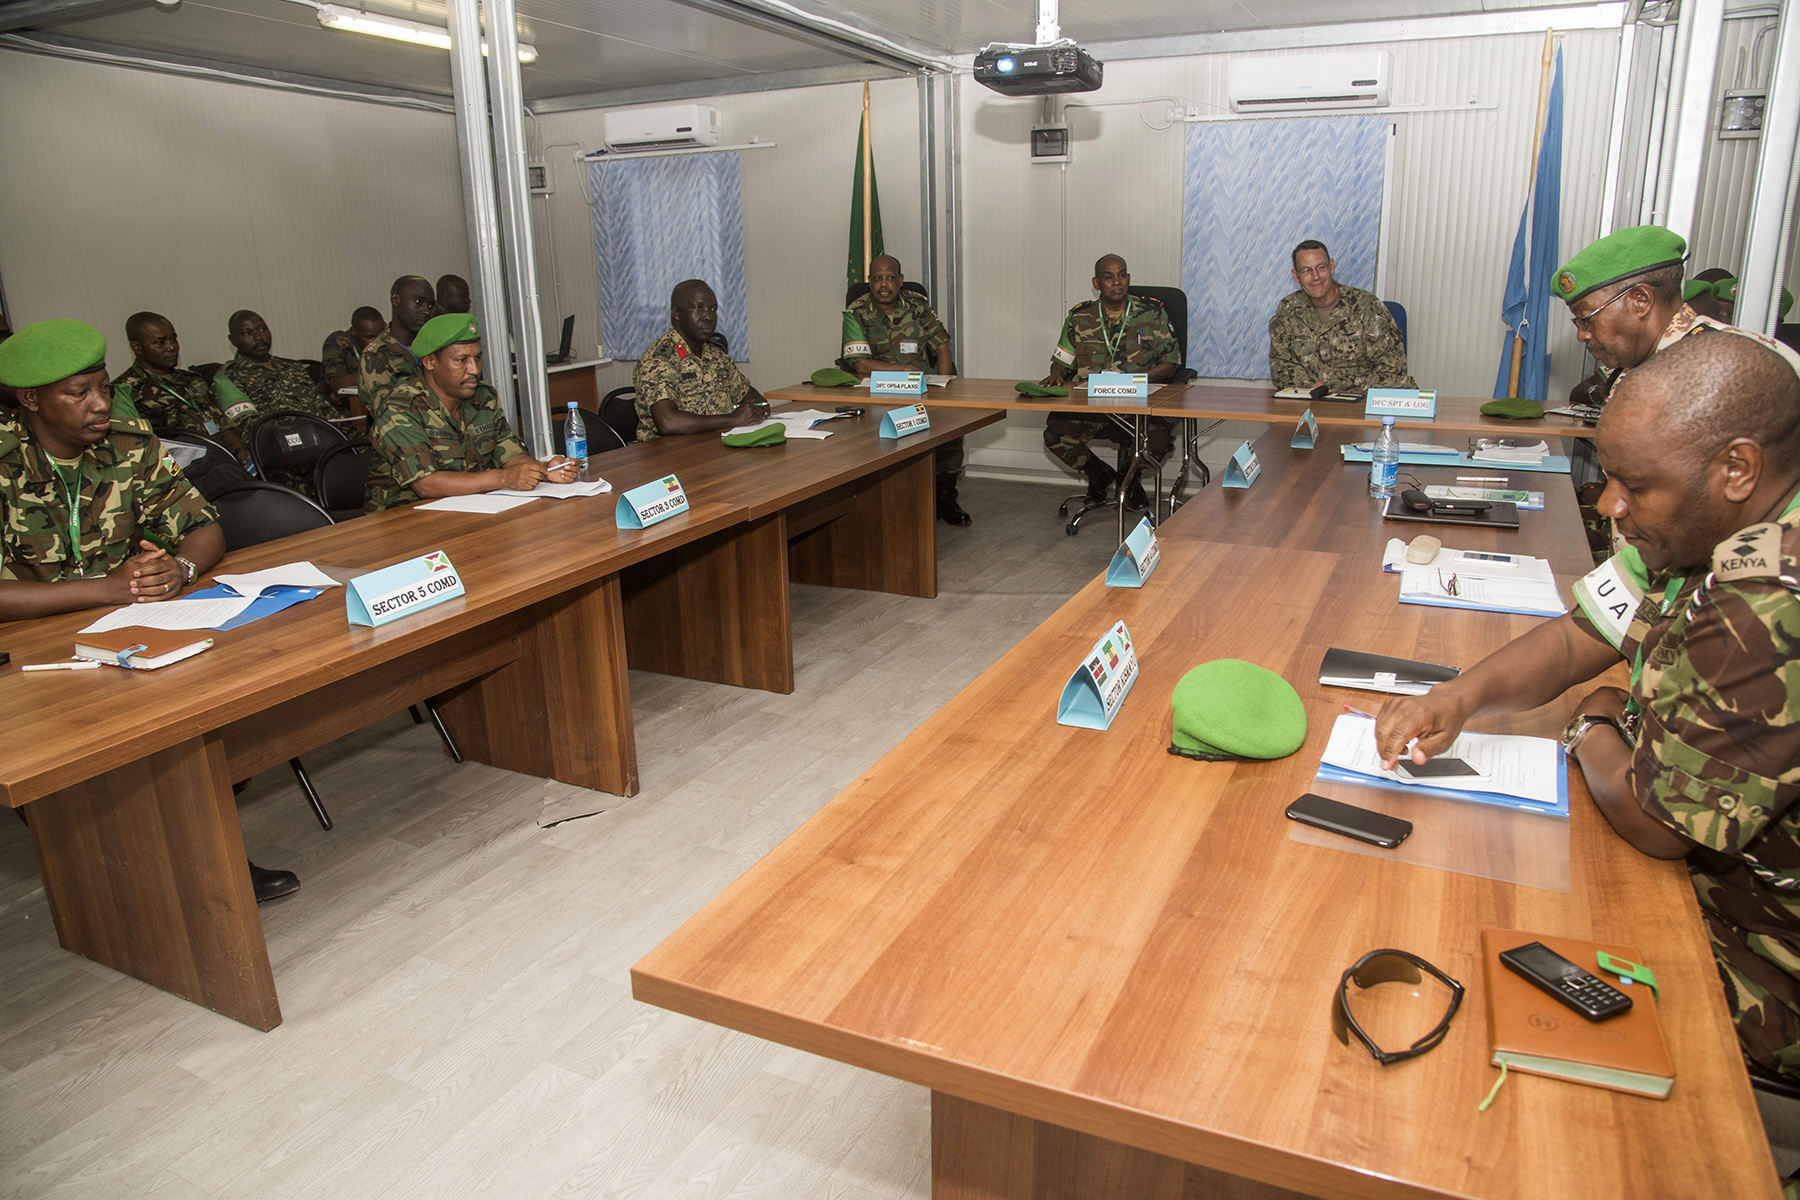 MOGADISHU, Somalia- U.S. Navy Rear Adm. William Wheeler (center), Combined Joint Task Force-Horn of Africa deputy commander, attends an African Union Mission in Somalia/Somali National Army Sector Commanders' conference, Aug. 25, 2016, at the AMISOM Force Headquarters in Mogadishu, Somalia. The conference brought together senior military leaders from each sector to review efficiency and needed improvements for security operations and SNA collaboration strategies. Djibouti, Kenya, Uganda, Ethiopia, and Burundi are the five AMISOM nations who contribute combat troops to the security of Somalia.  (U.S. Air Force photo by Staff Sgt. Tiffany DeNault)